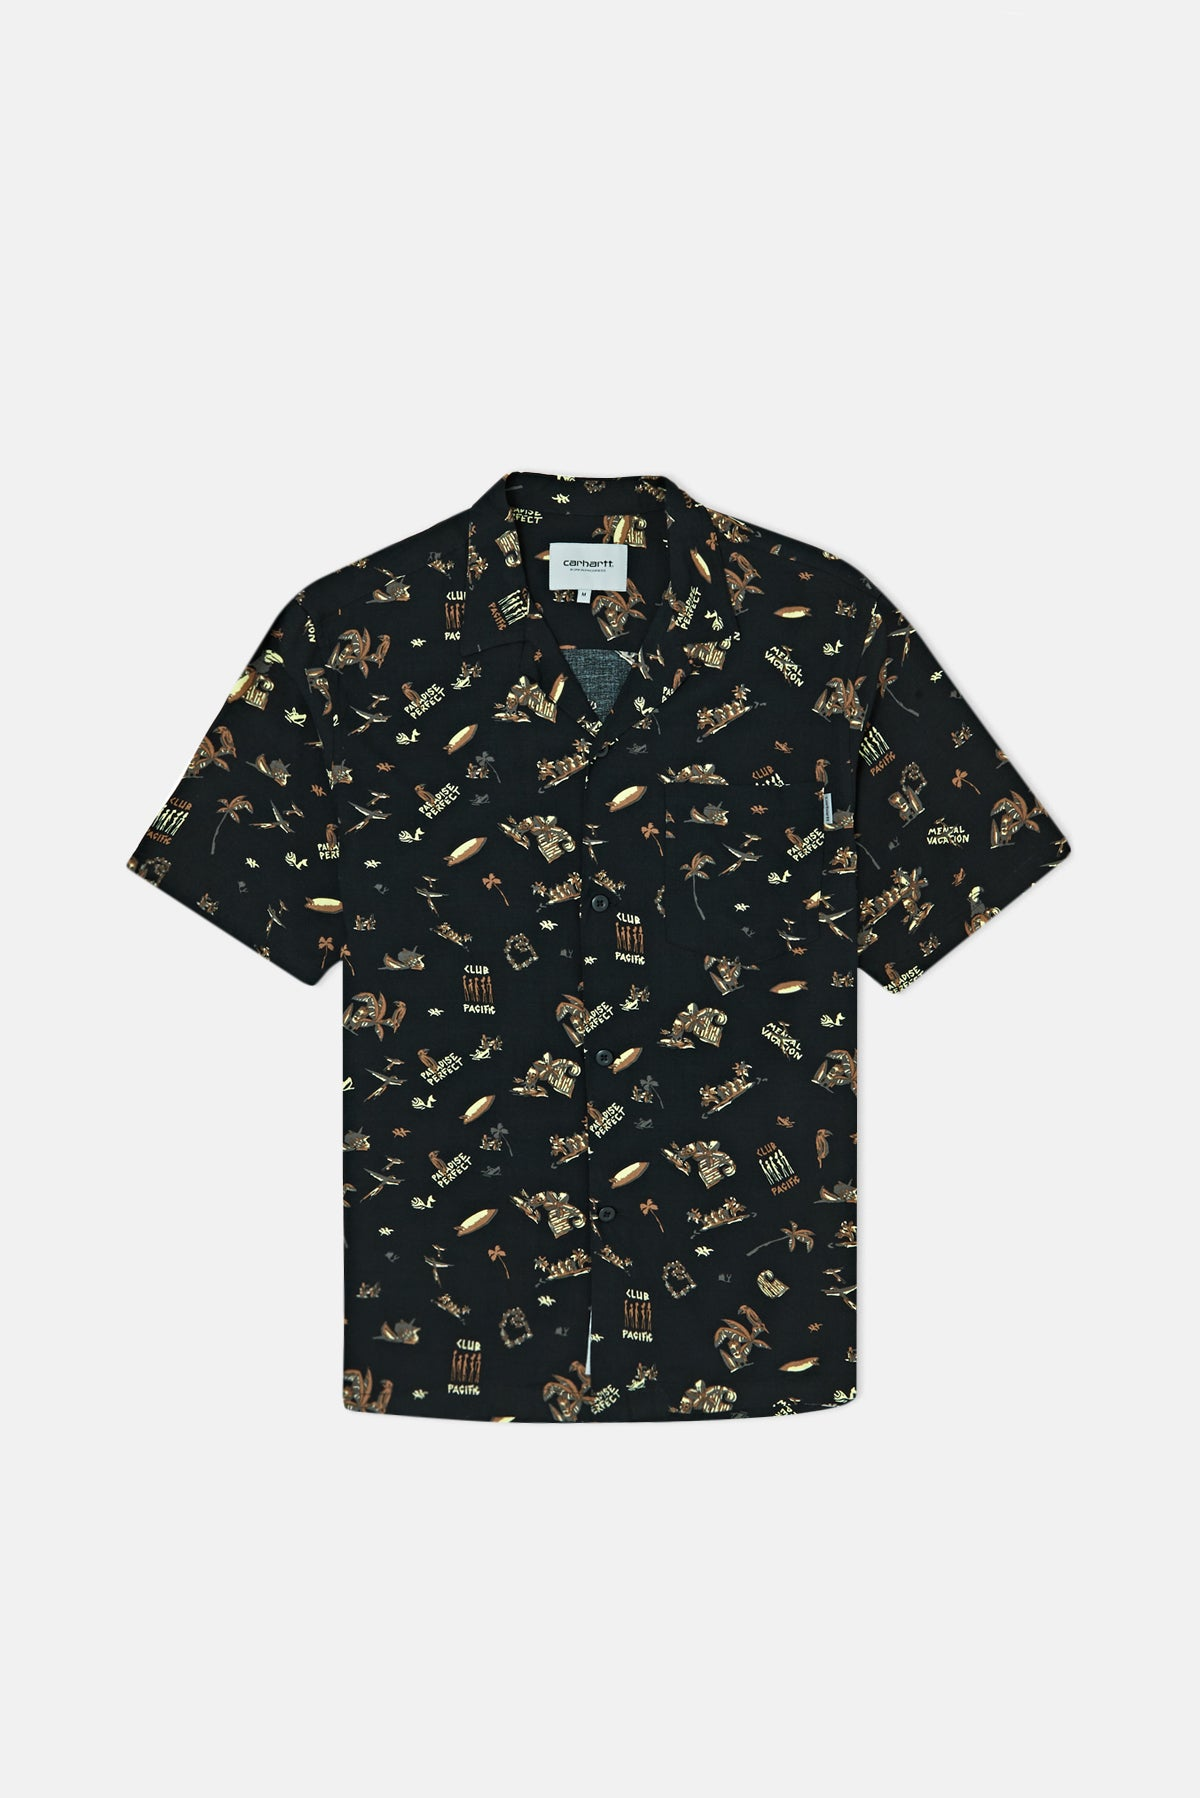 297dc630b43fa Carhartt Club Pacific S S Shirt available from Priory